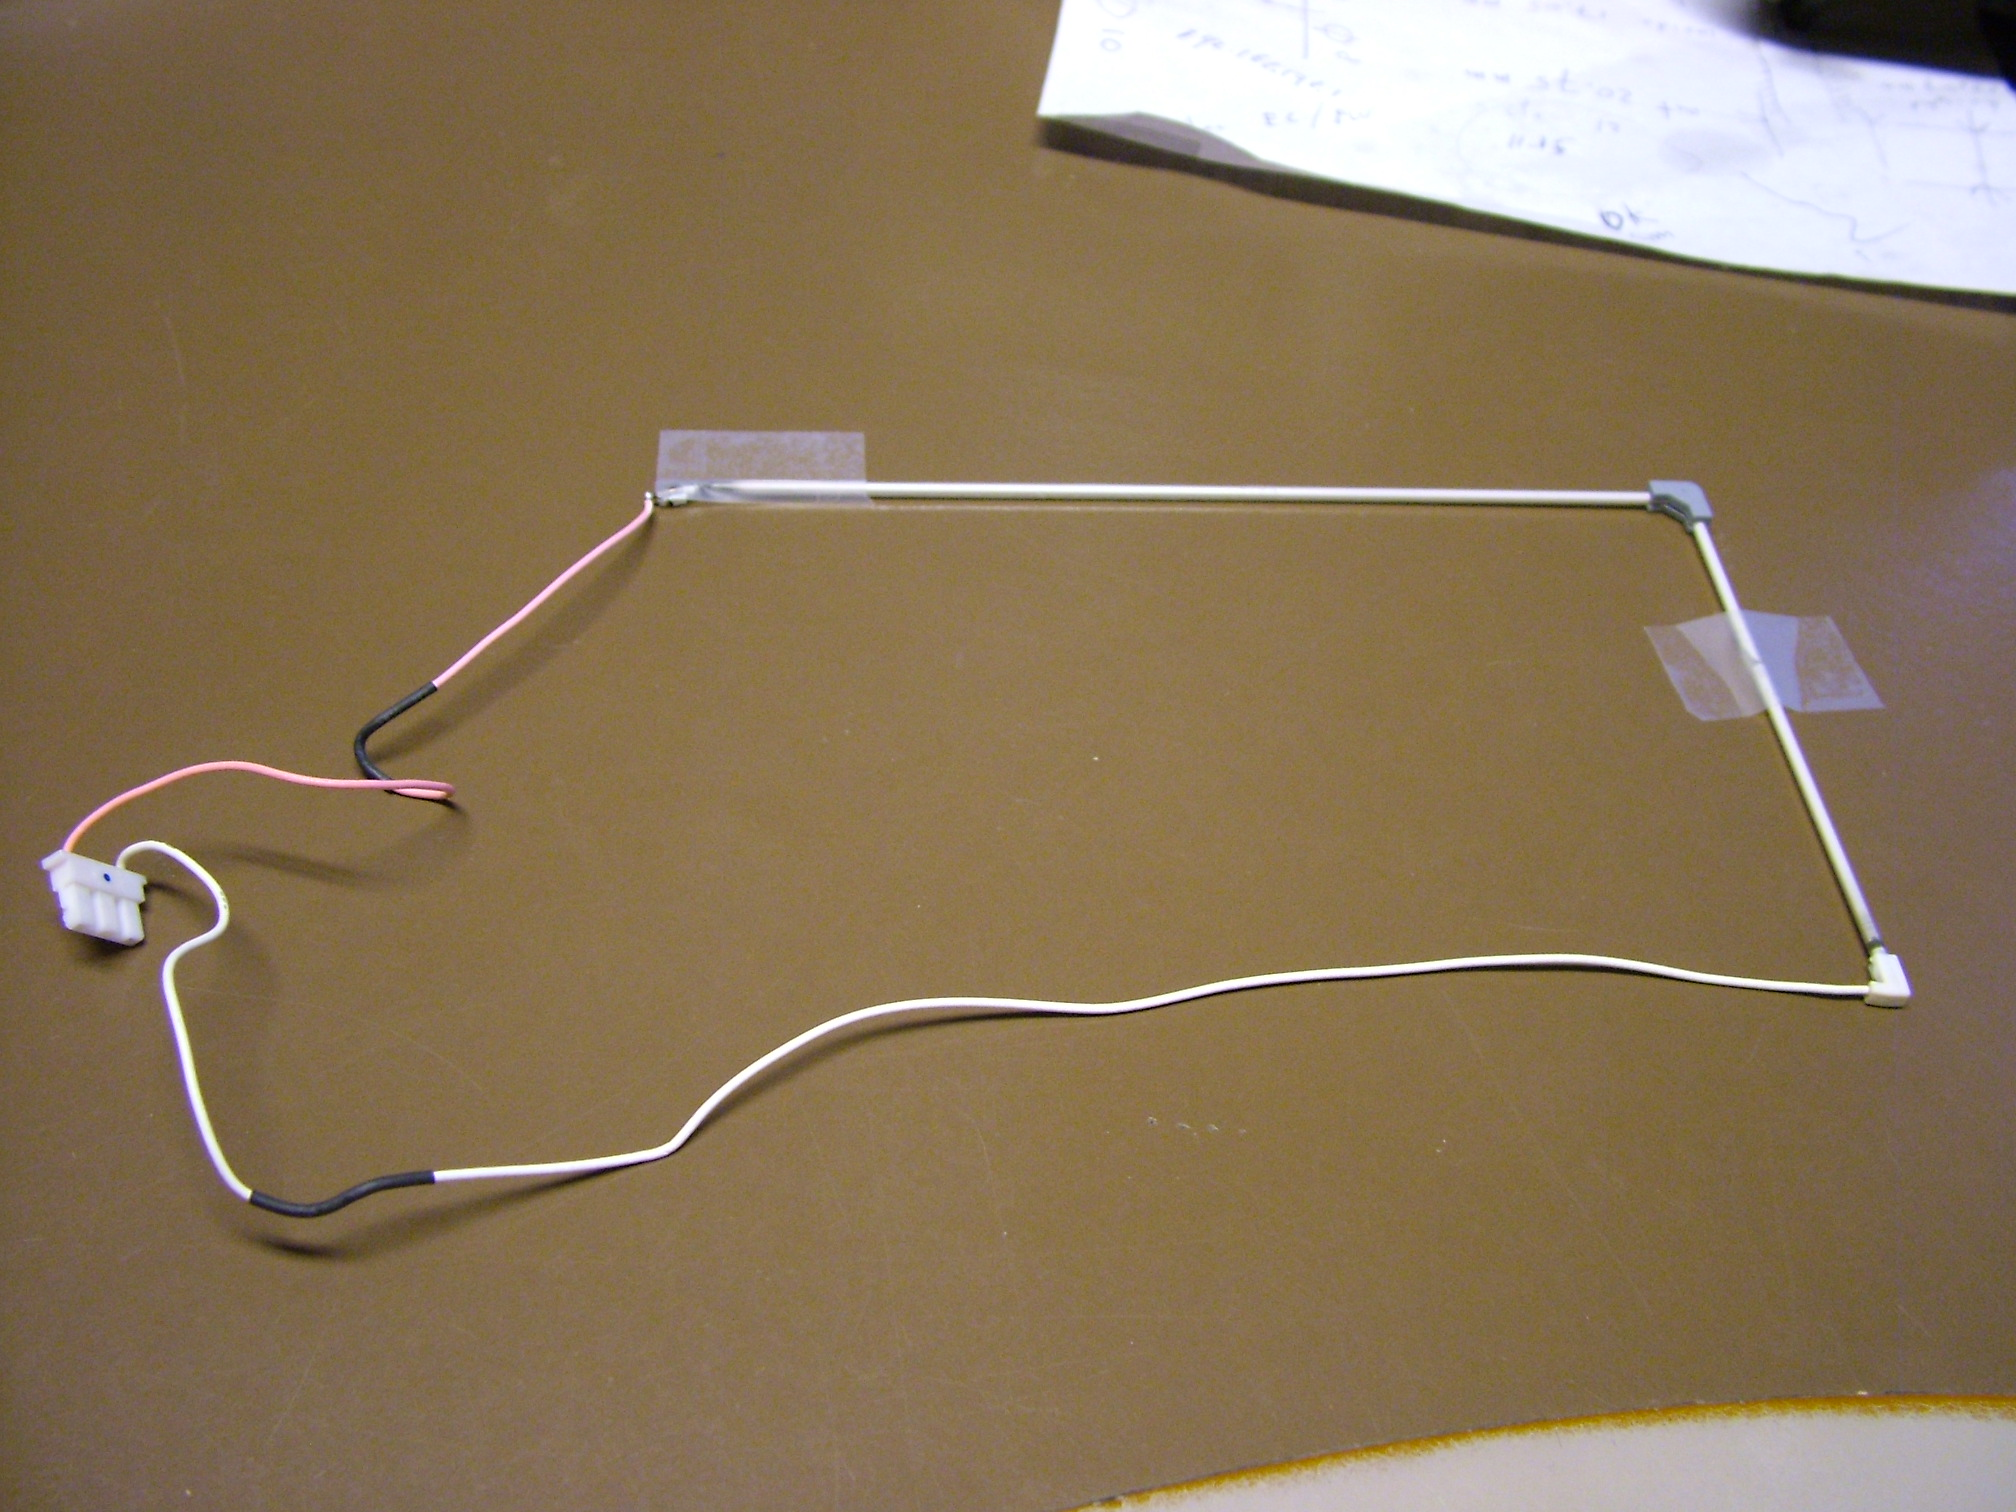 158 x 96 x 2.2mm L shaped bulb with wires and connectors length red wire:14cm ,length white wire 27cm